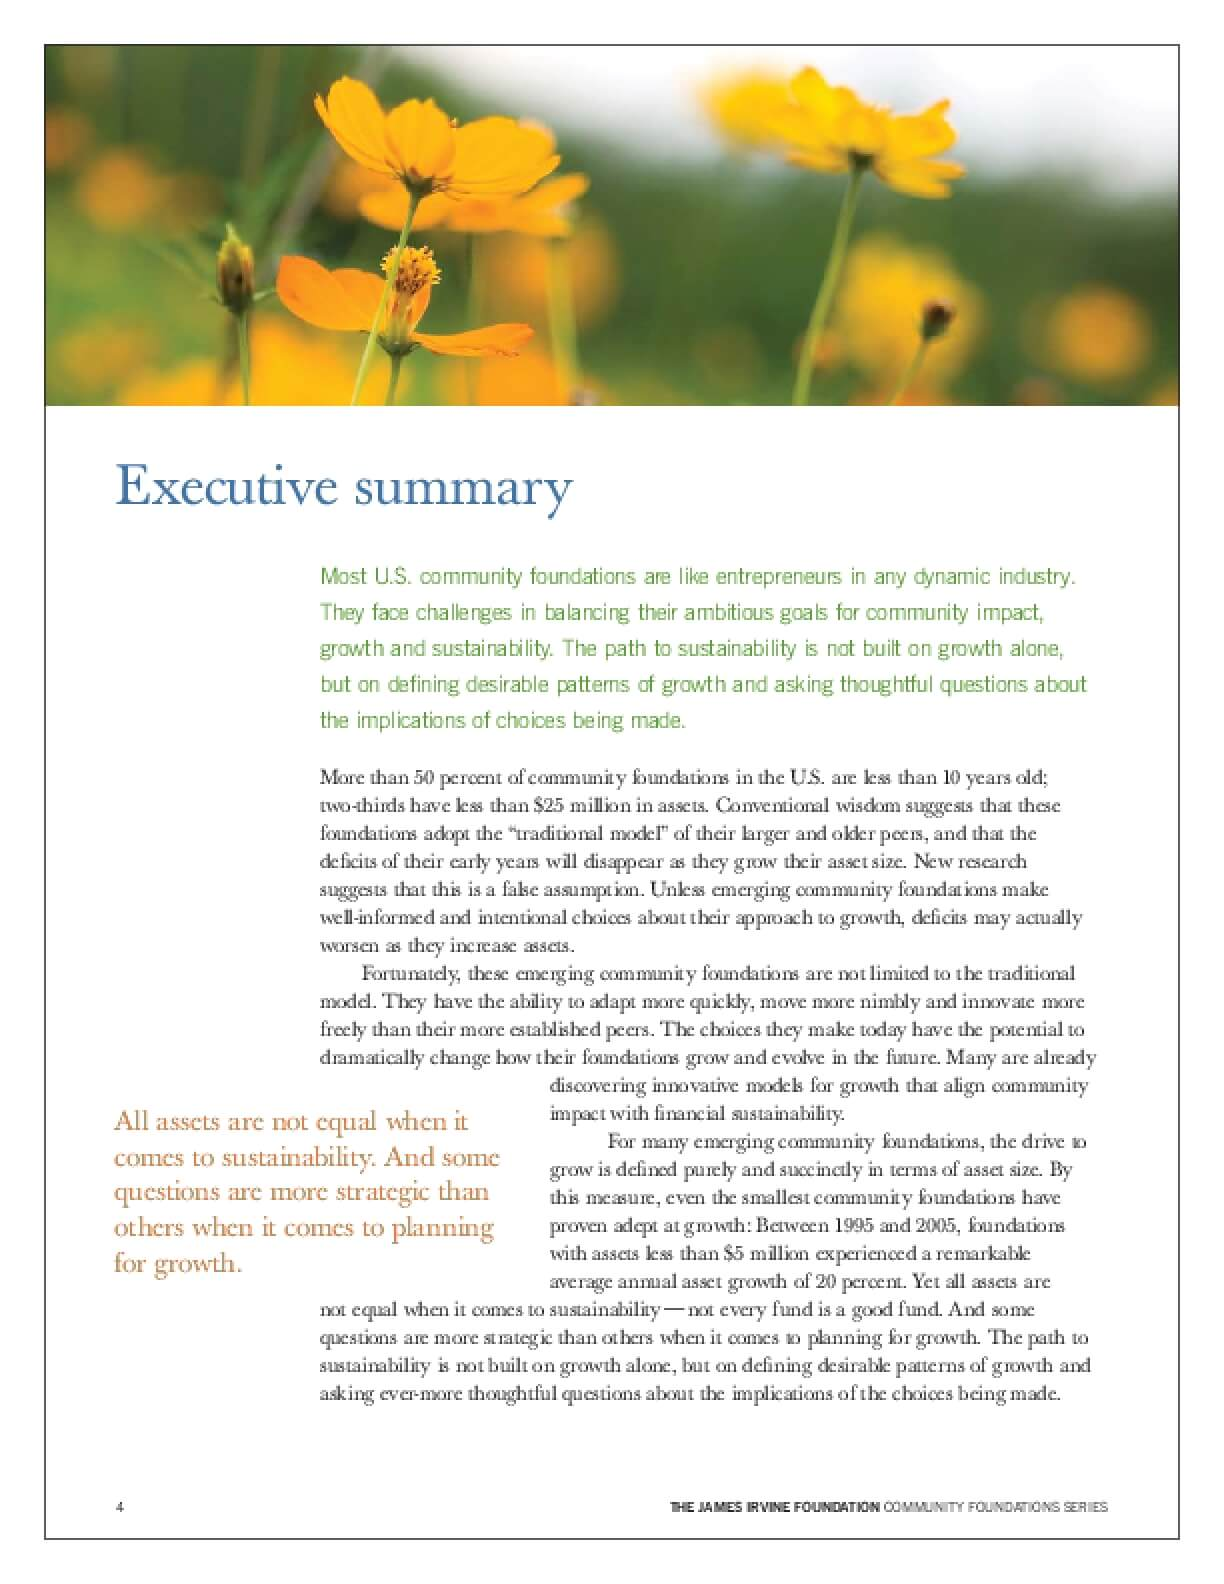 Growing Smarter: Achieving Sustainability in Emerging Community Foundations: Executive summary